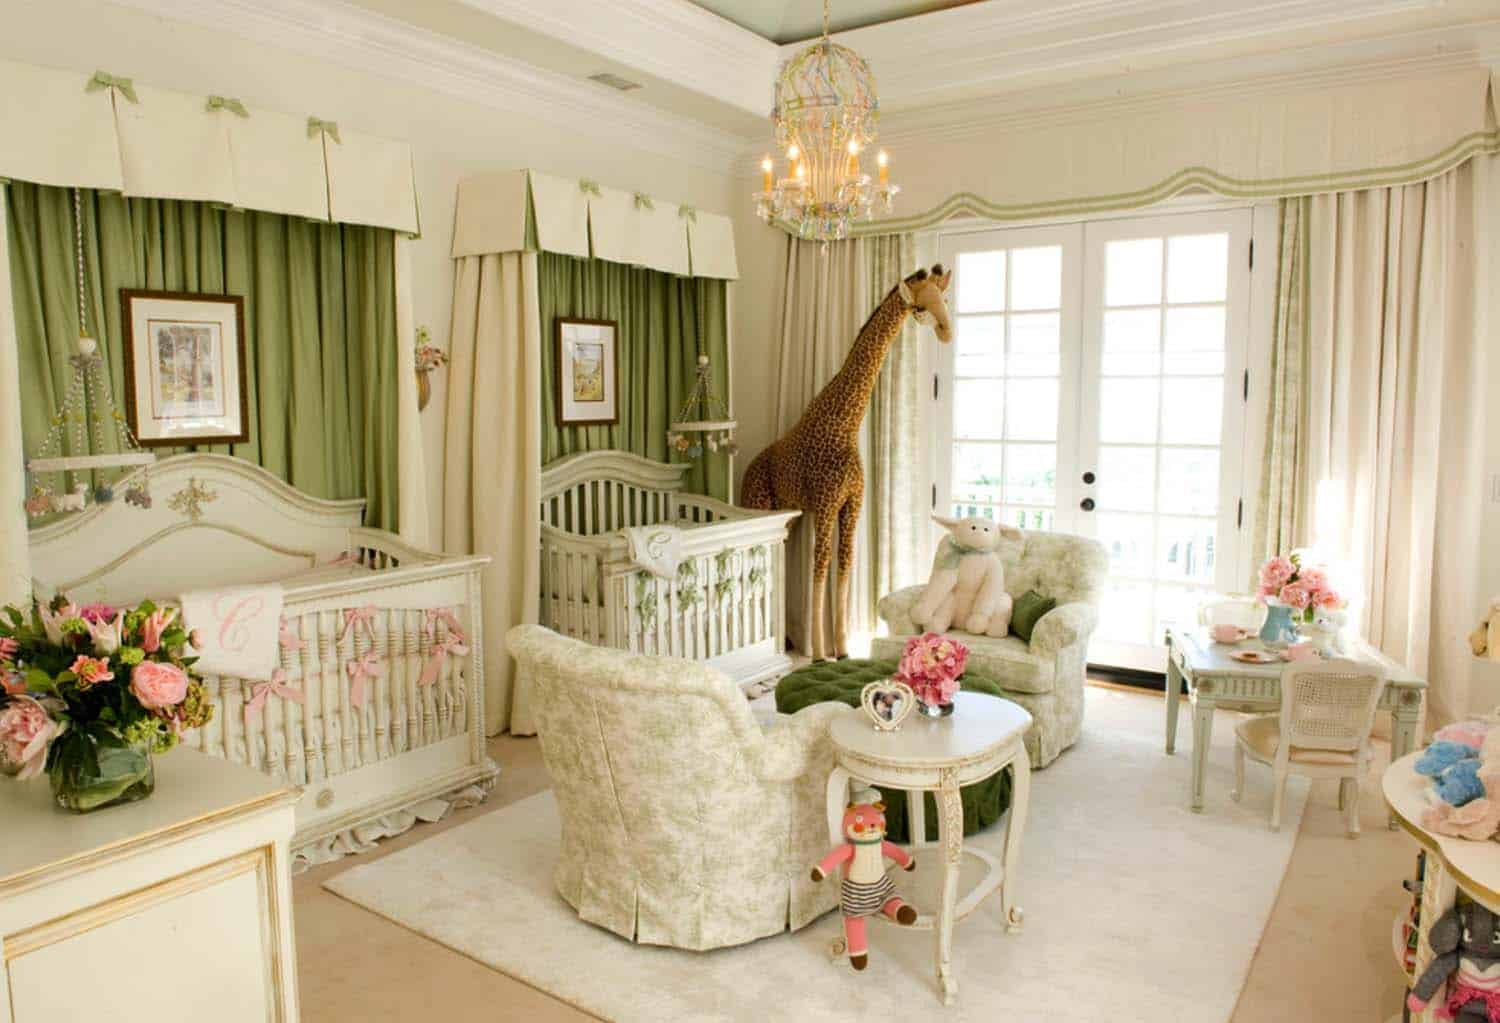 Stylish Nursery Decorating Ideas-29-1 Kindesign